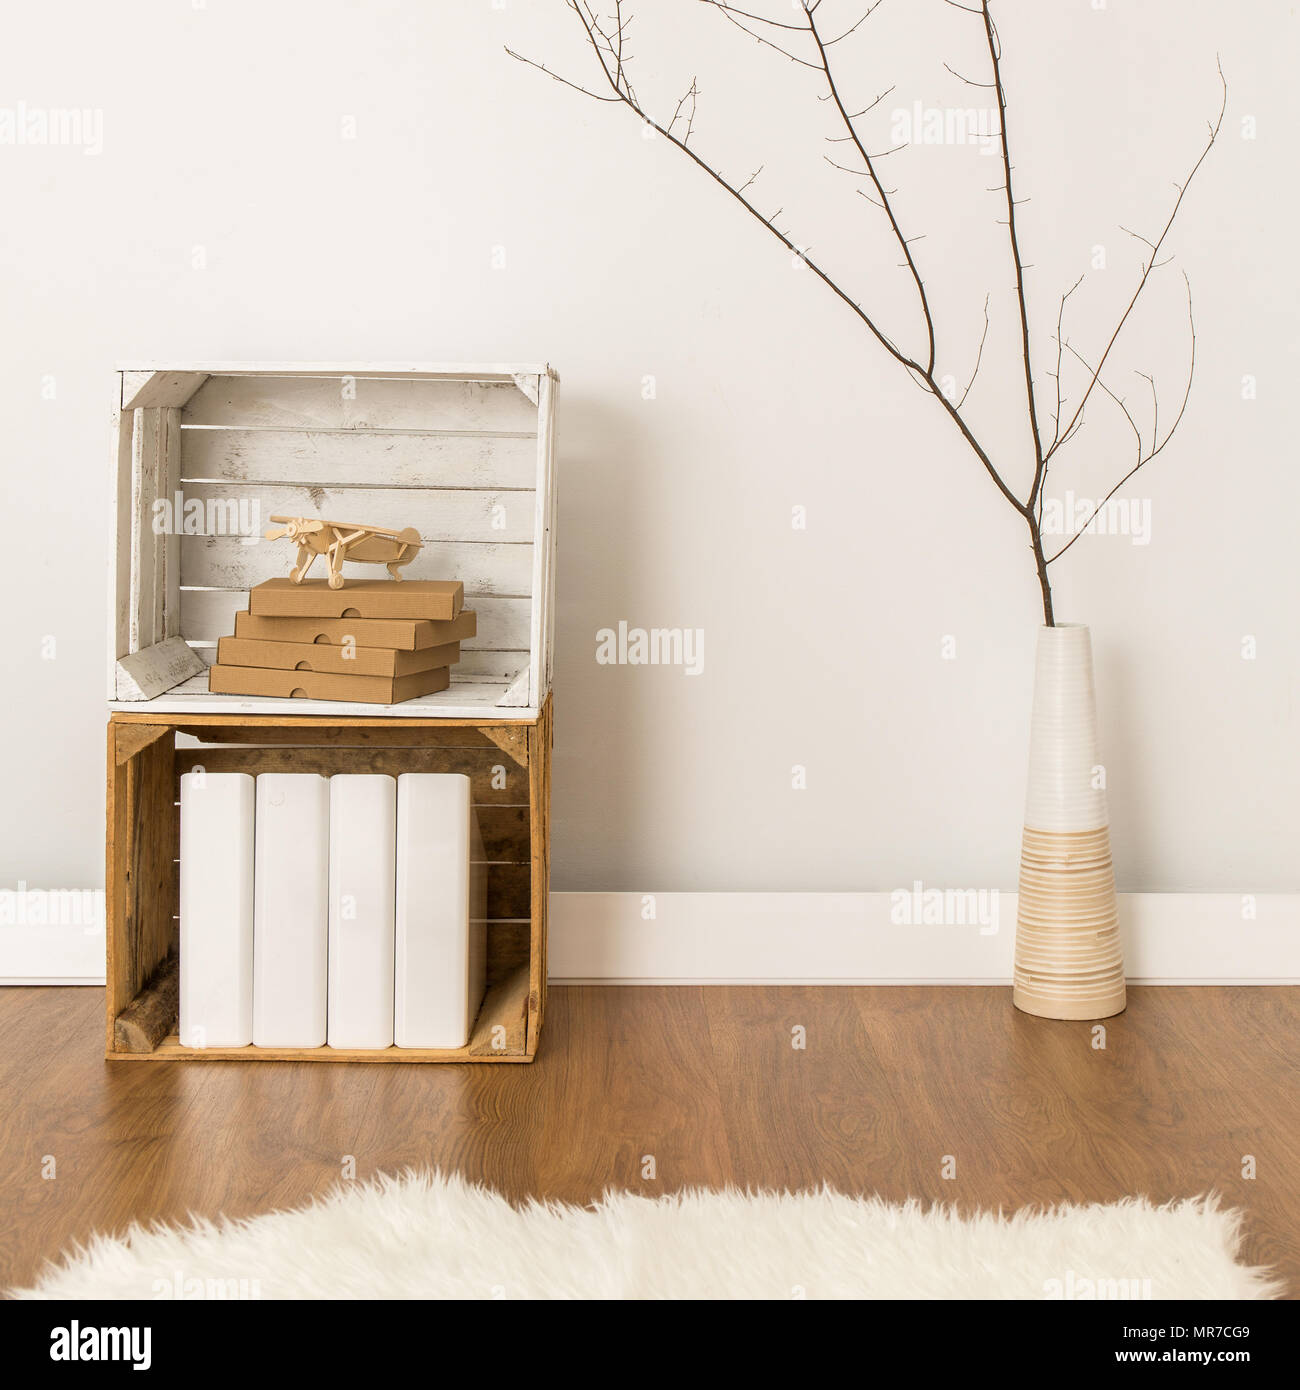 Handmade drawer and decor vase standing on wood floor. White wall in the background Stock Photo